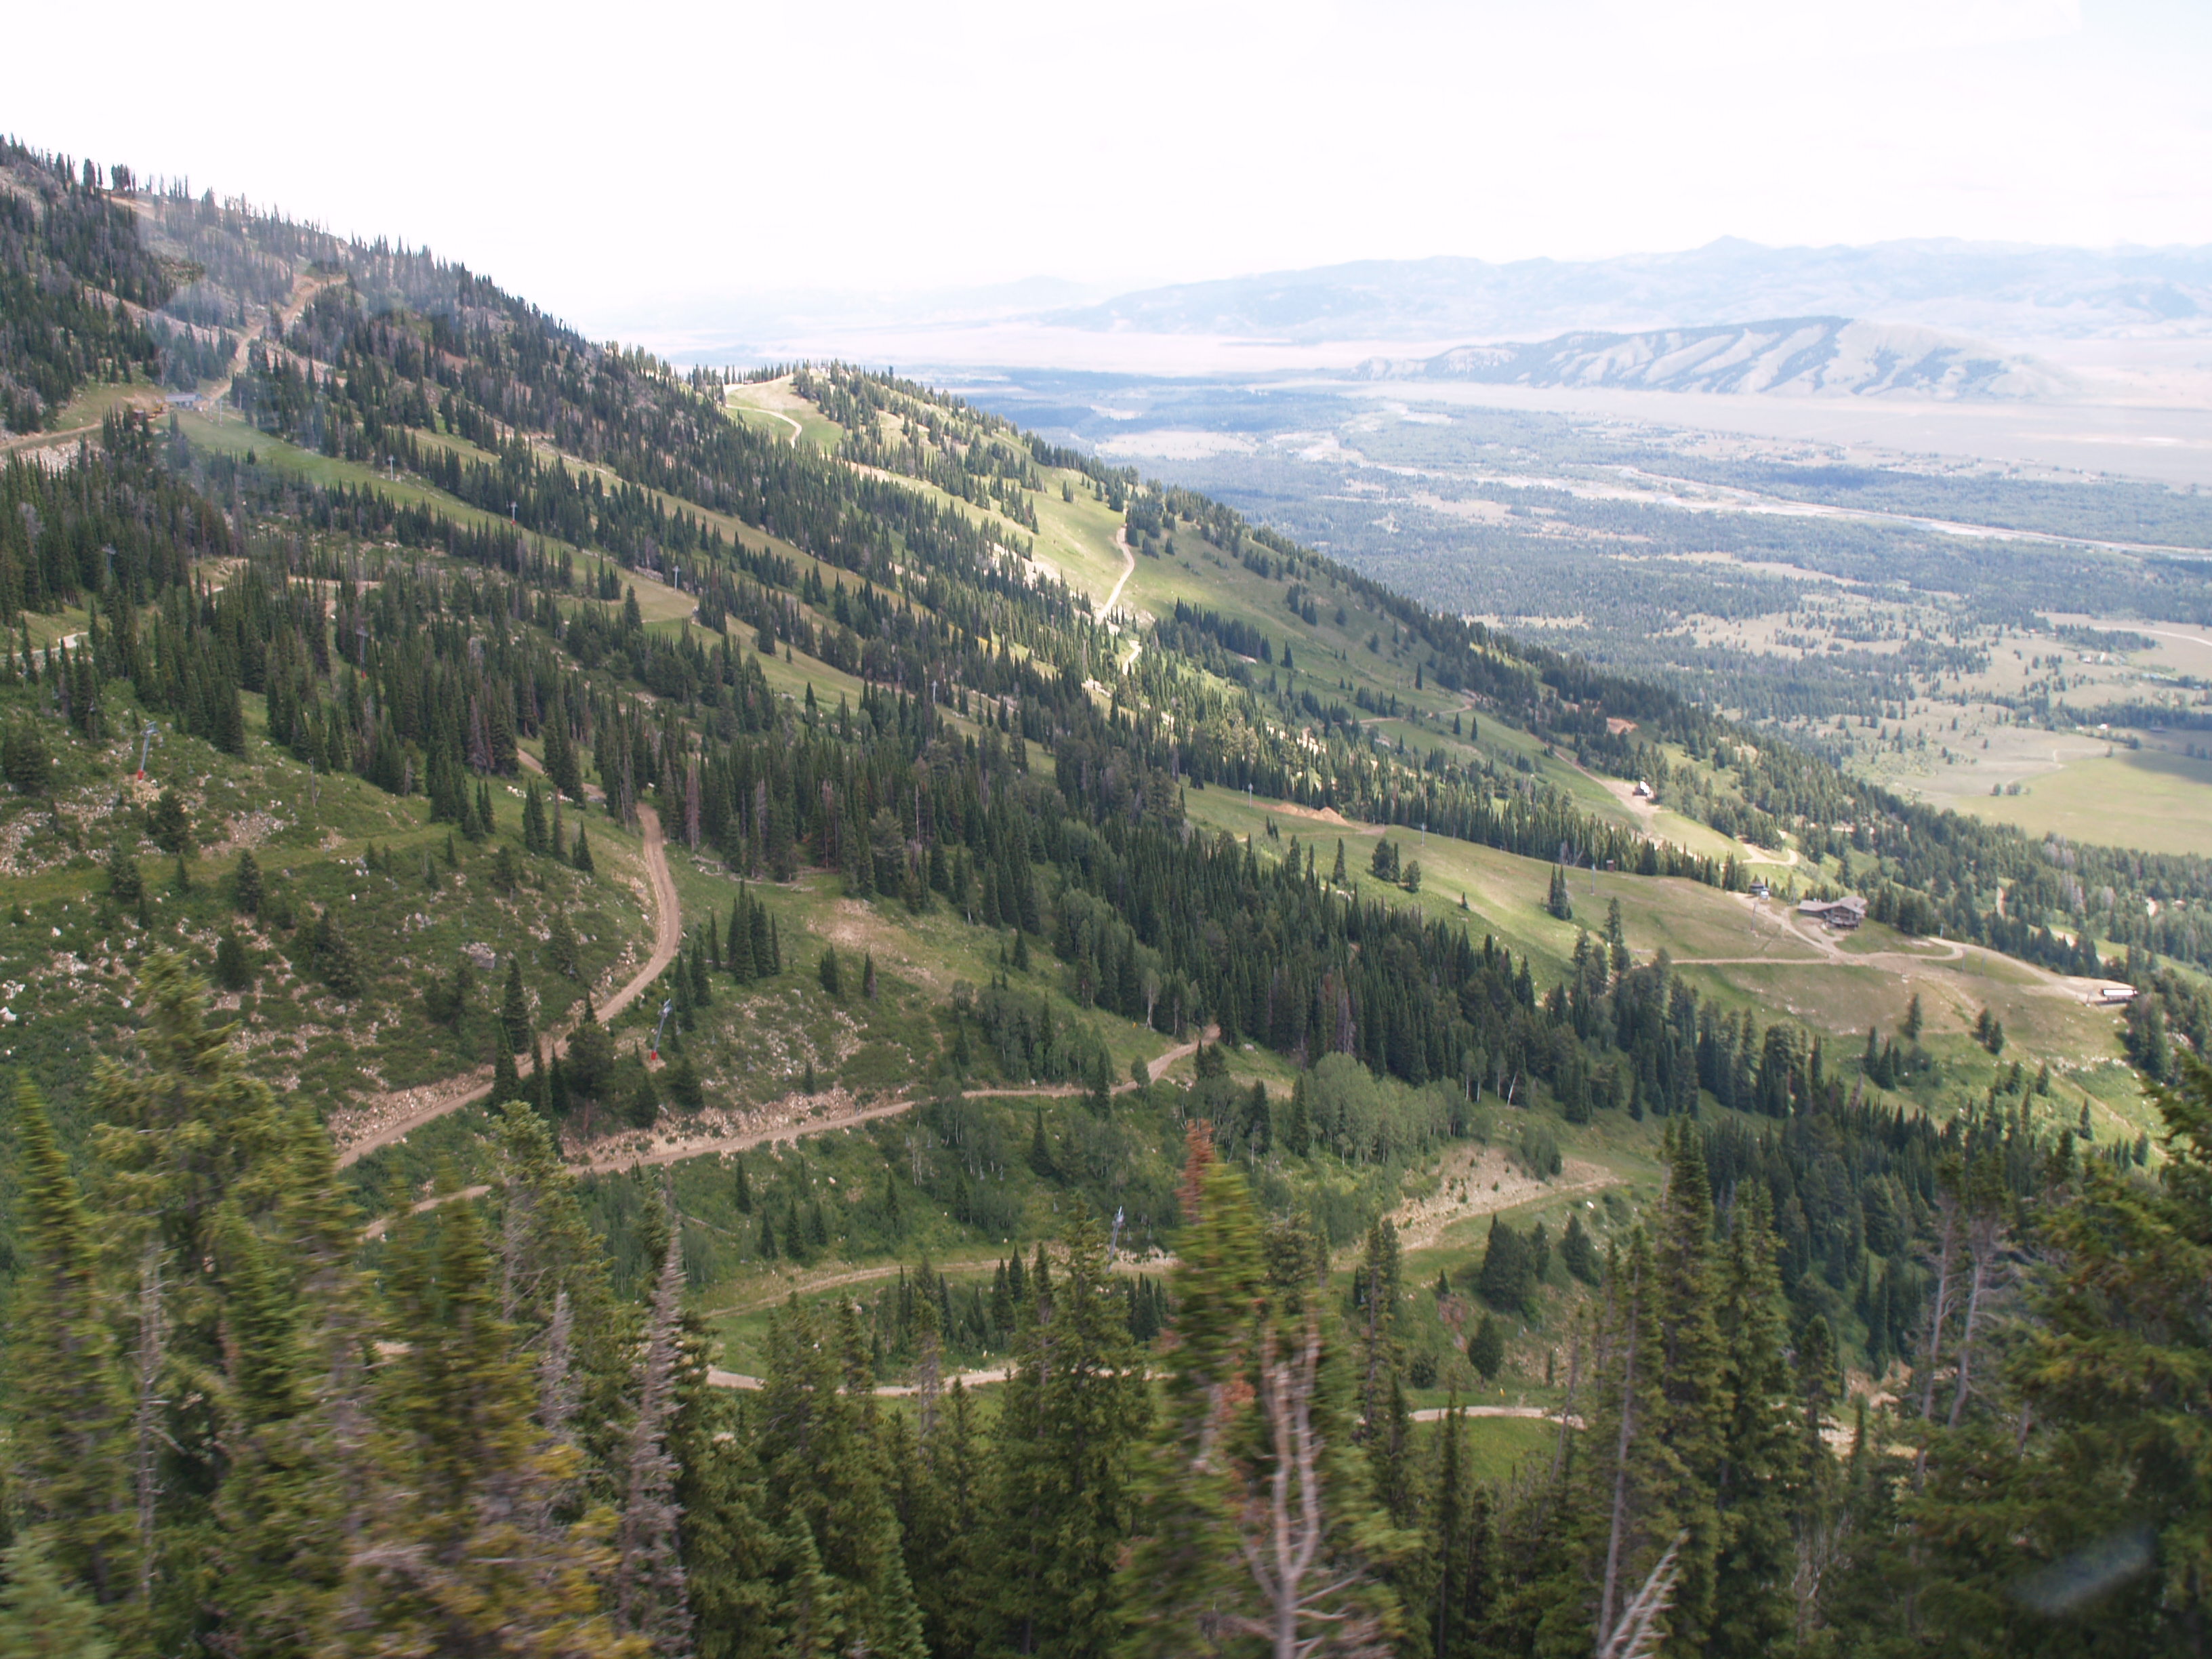 view looking across part of the ski area